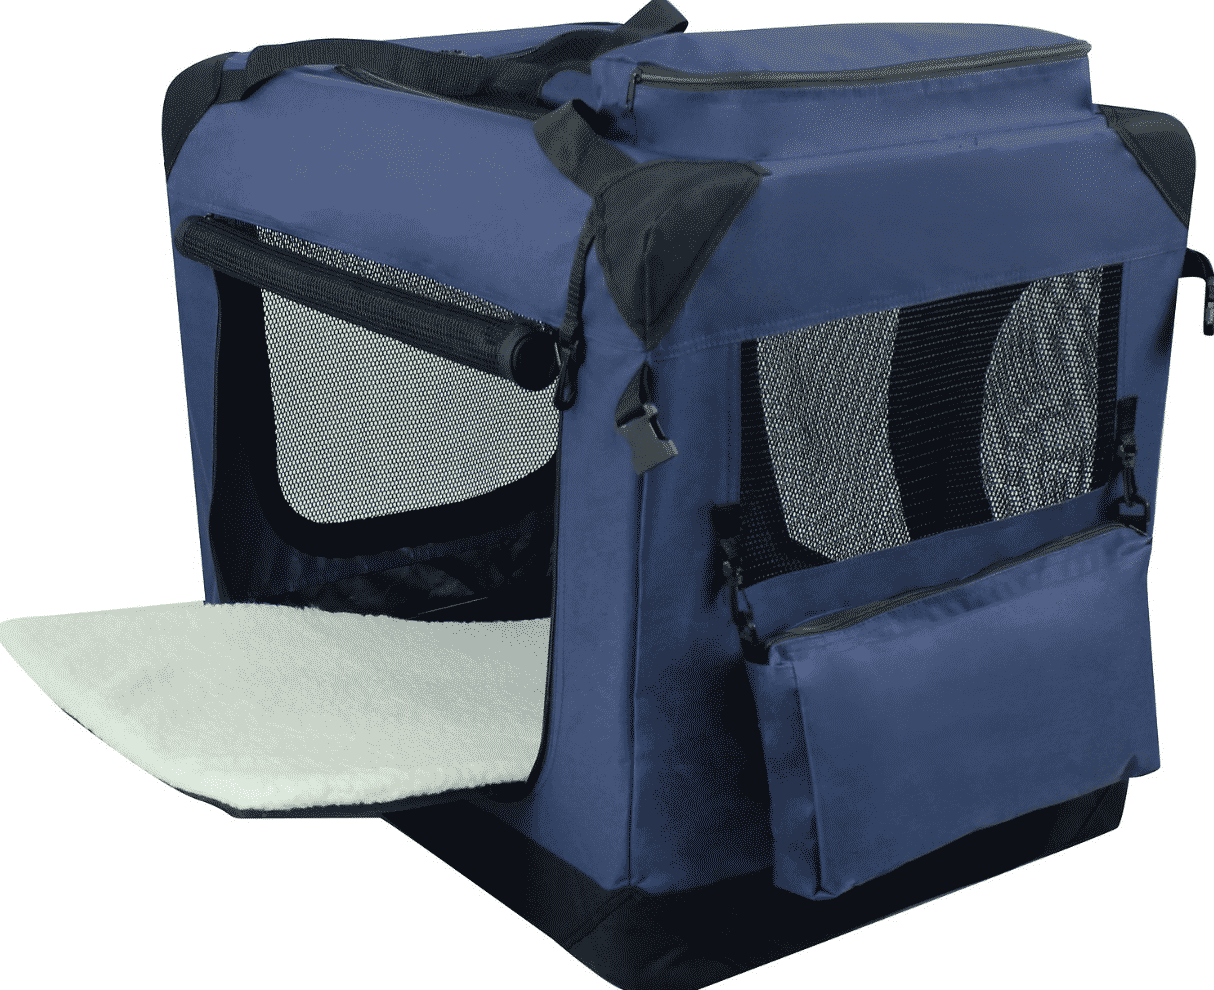 Top Large Dog Crates The Best Big Dog Crate Options For 2019